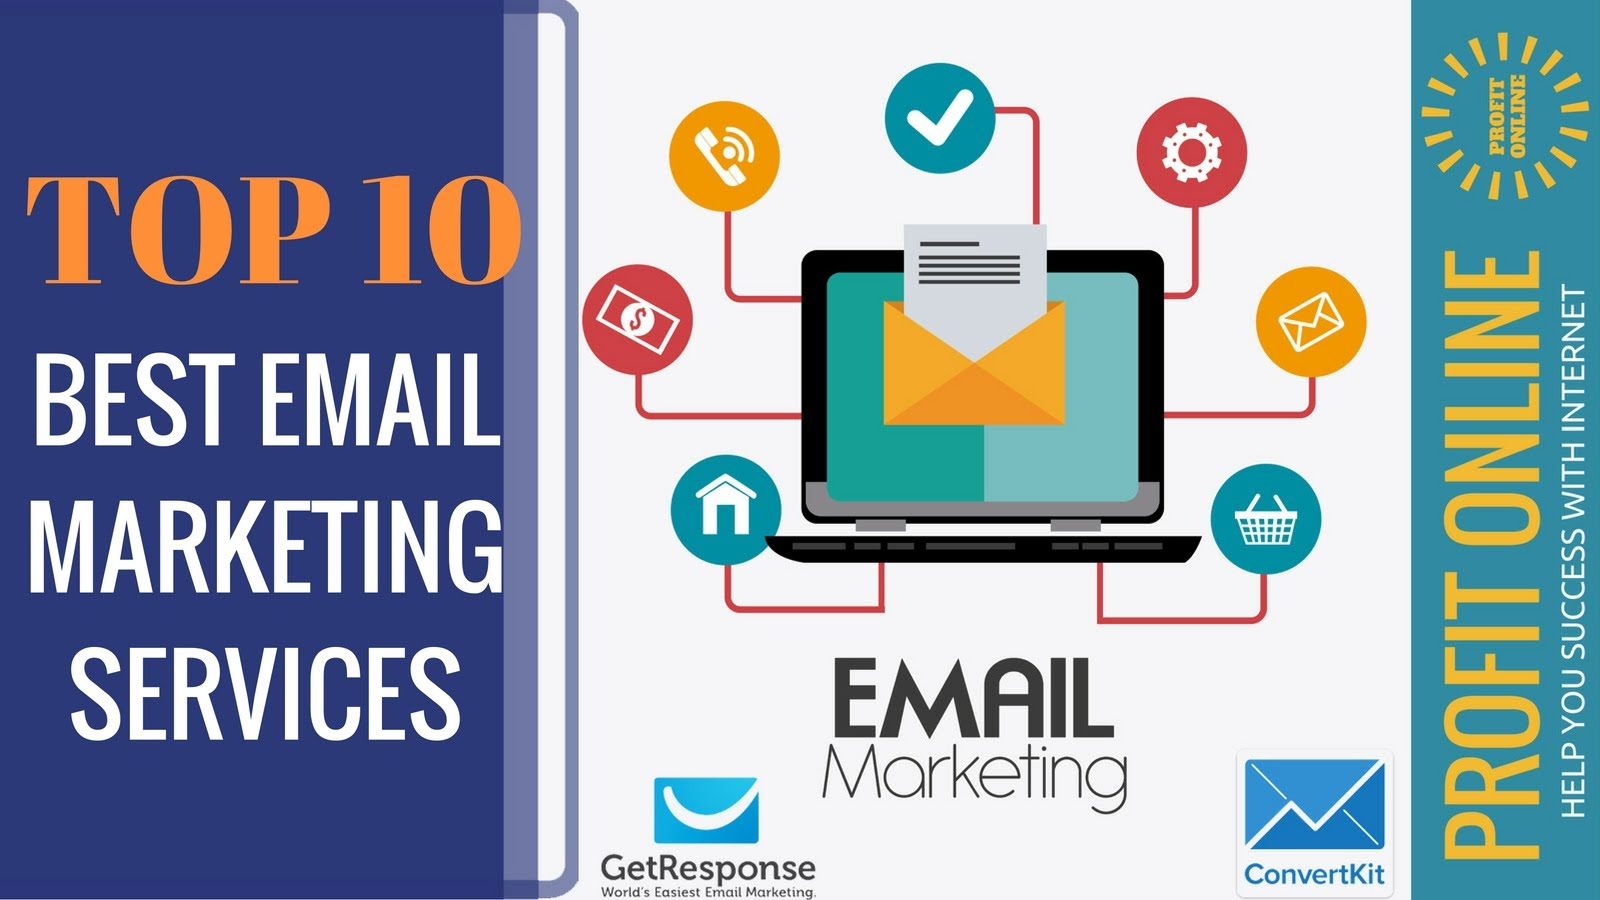 Email Marketing Best Practices – Top 10 Best Email Marketing Services 2016